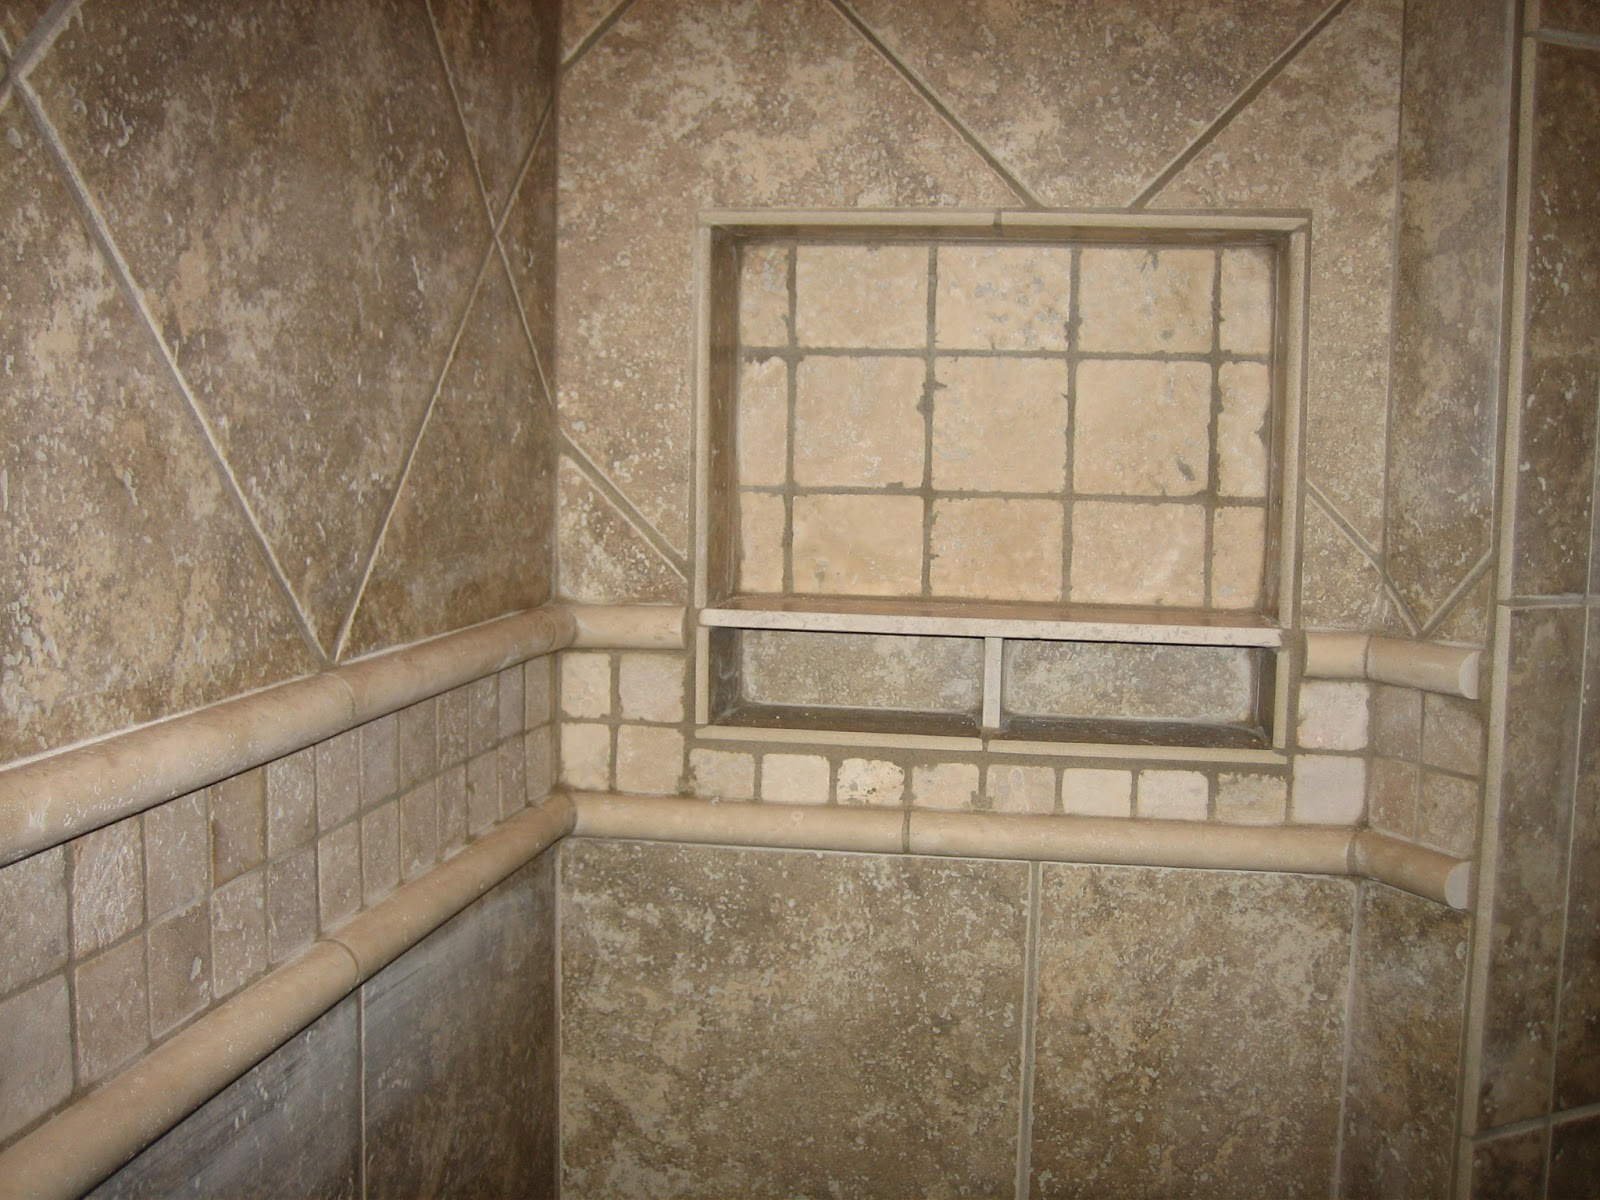 Small Shower Stall Replaced With A Door Less Walk In Tiled Shower